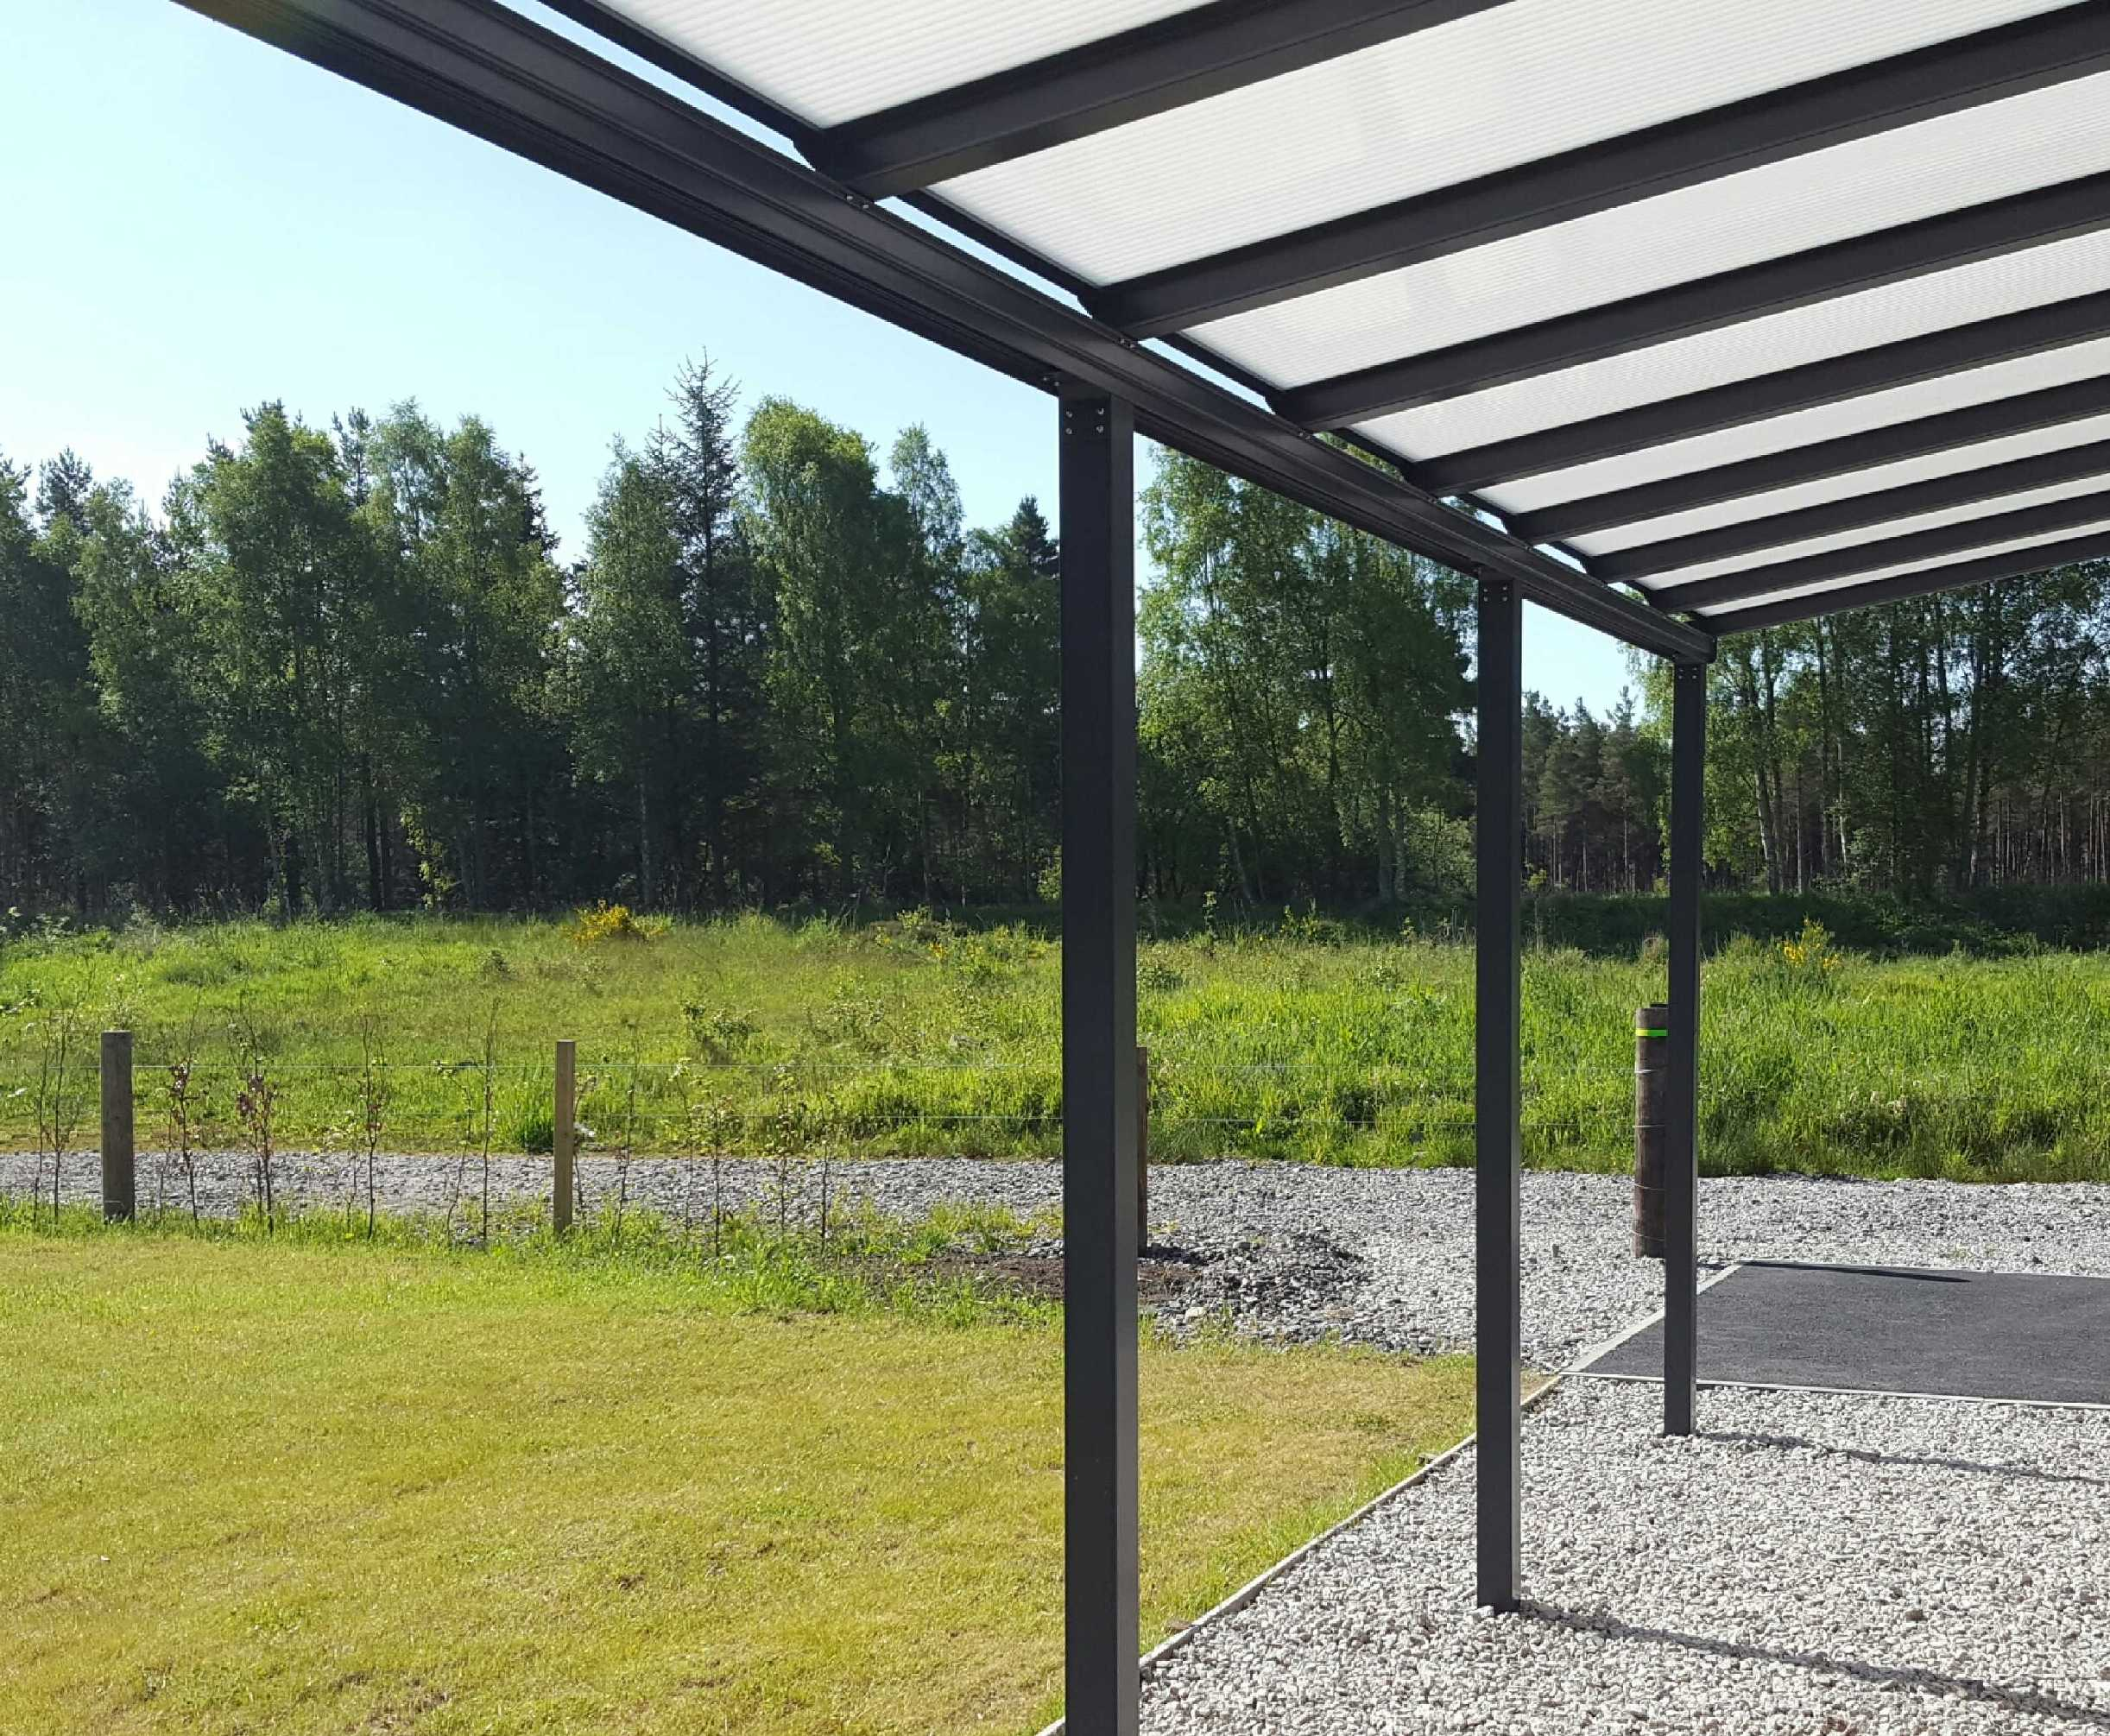 Omega Smart Lean-To Canopy , Anthracite Grey, 16mm Polycarbonate Glazing - 6.3m (W) x 1.5m (P), (4) Supporting Posts